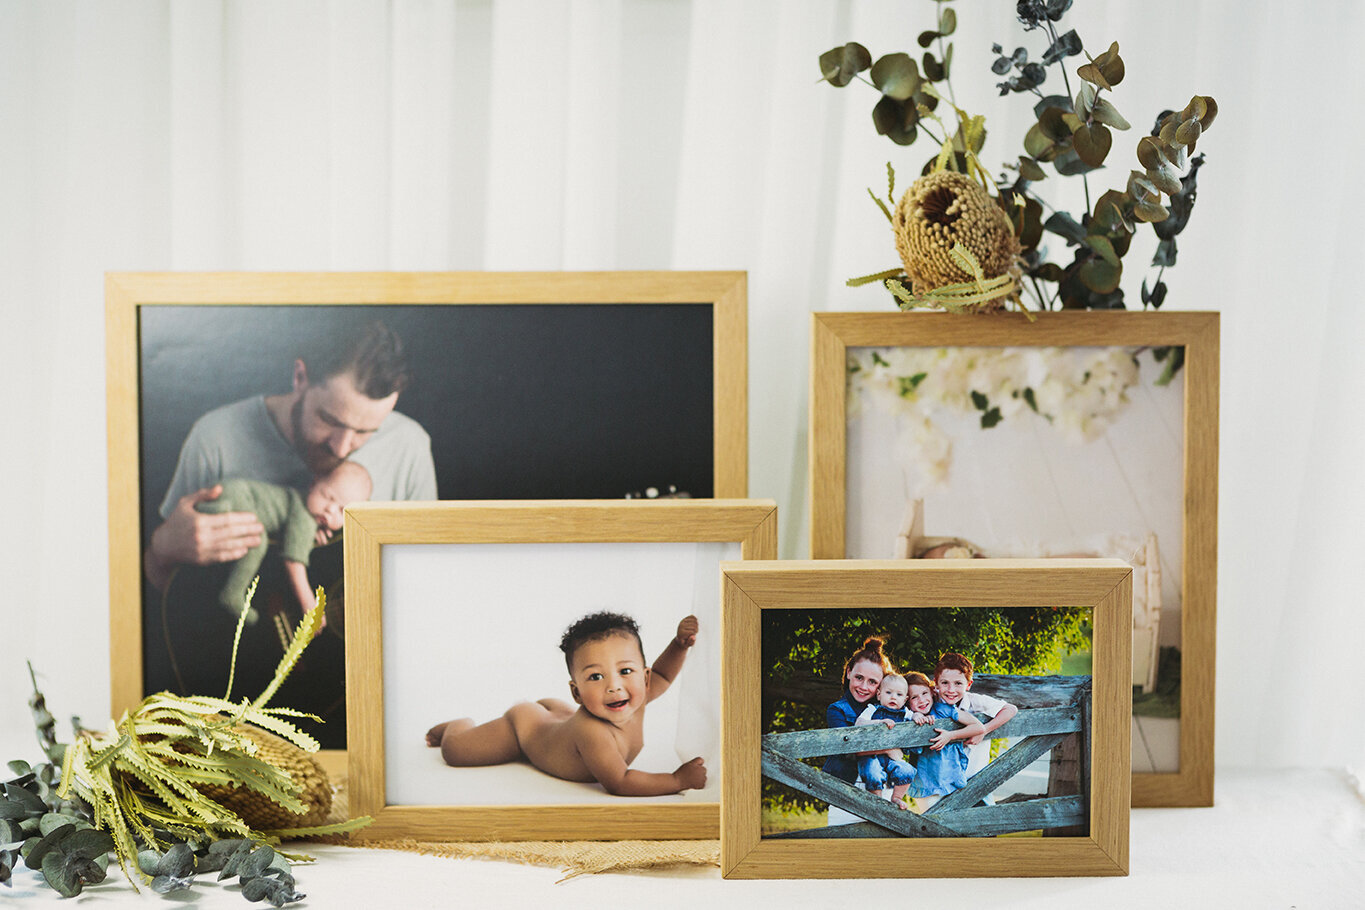 Product examples of Oak Desk Mount featuring professional family and newborn photography